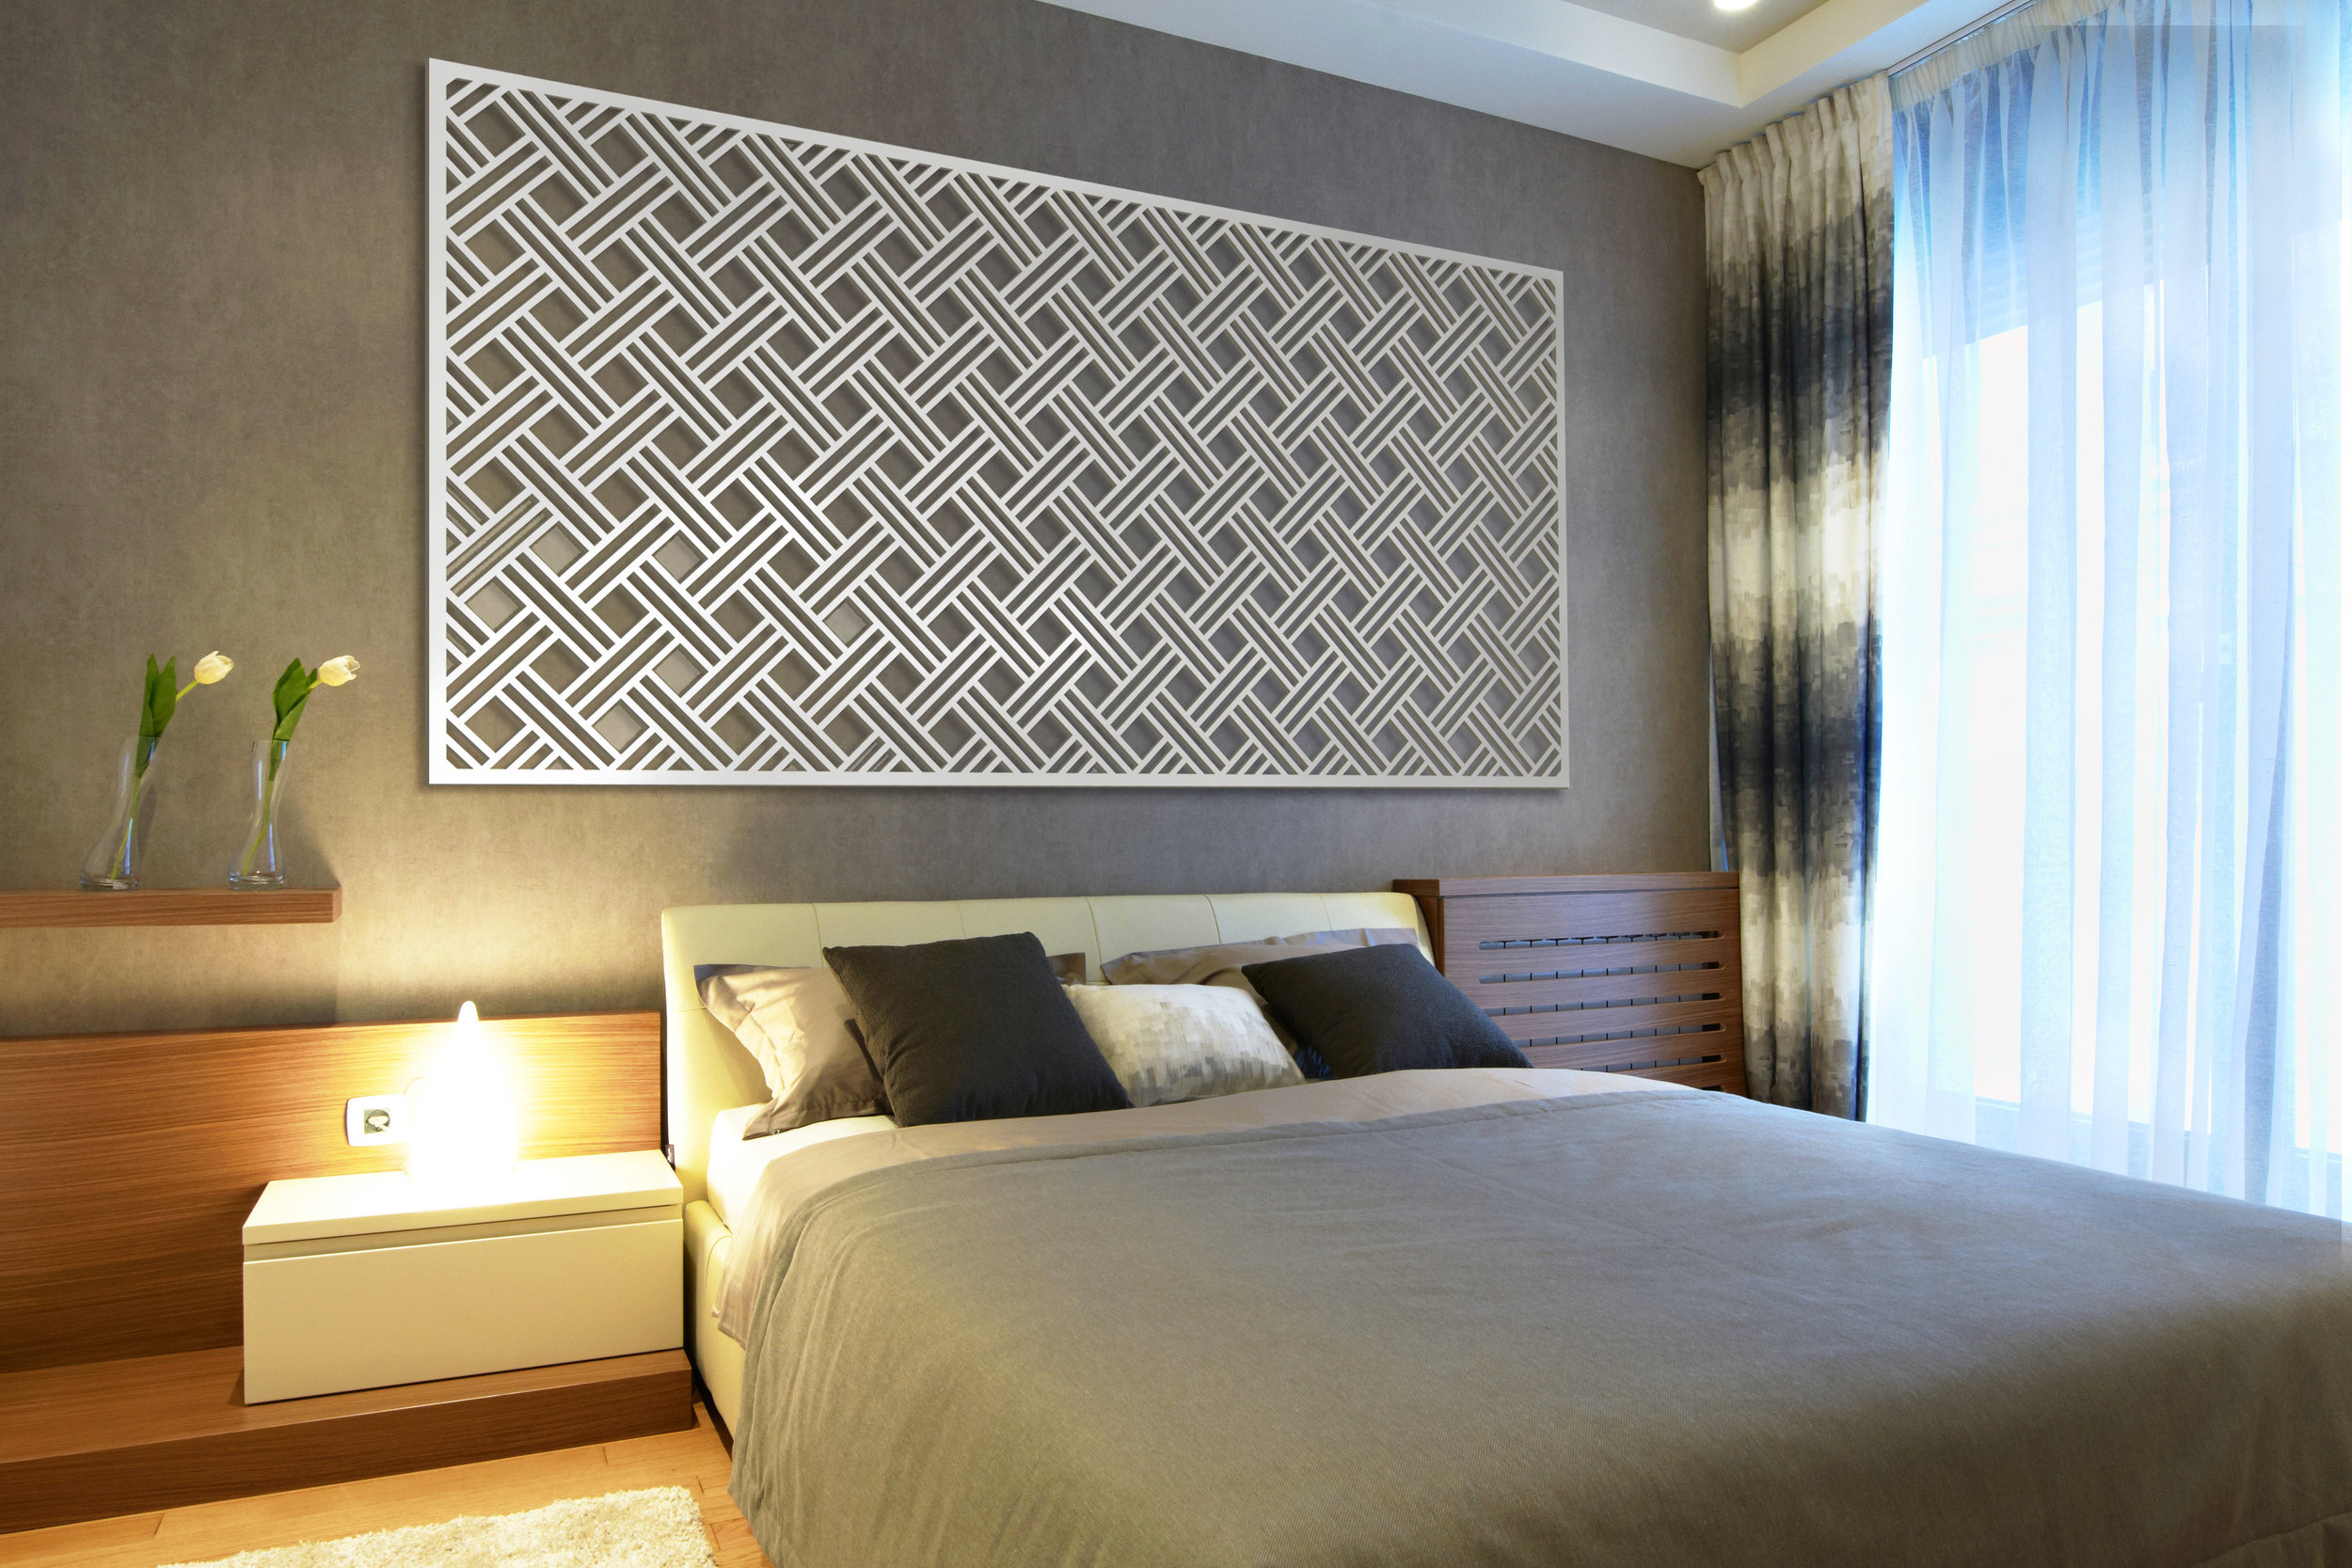 Installation Rendering C   Open Basketweave decorative painted wall panel - painted